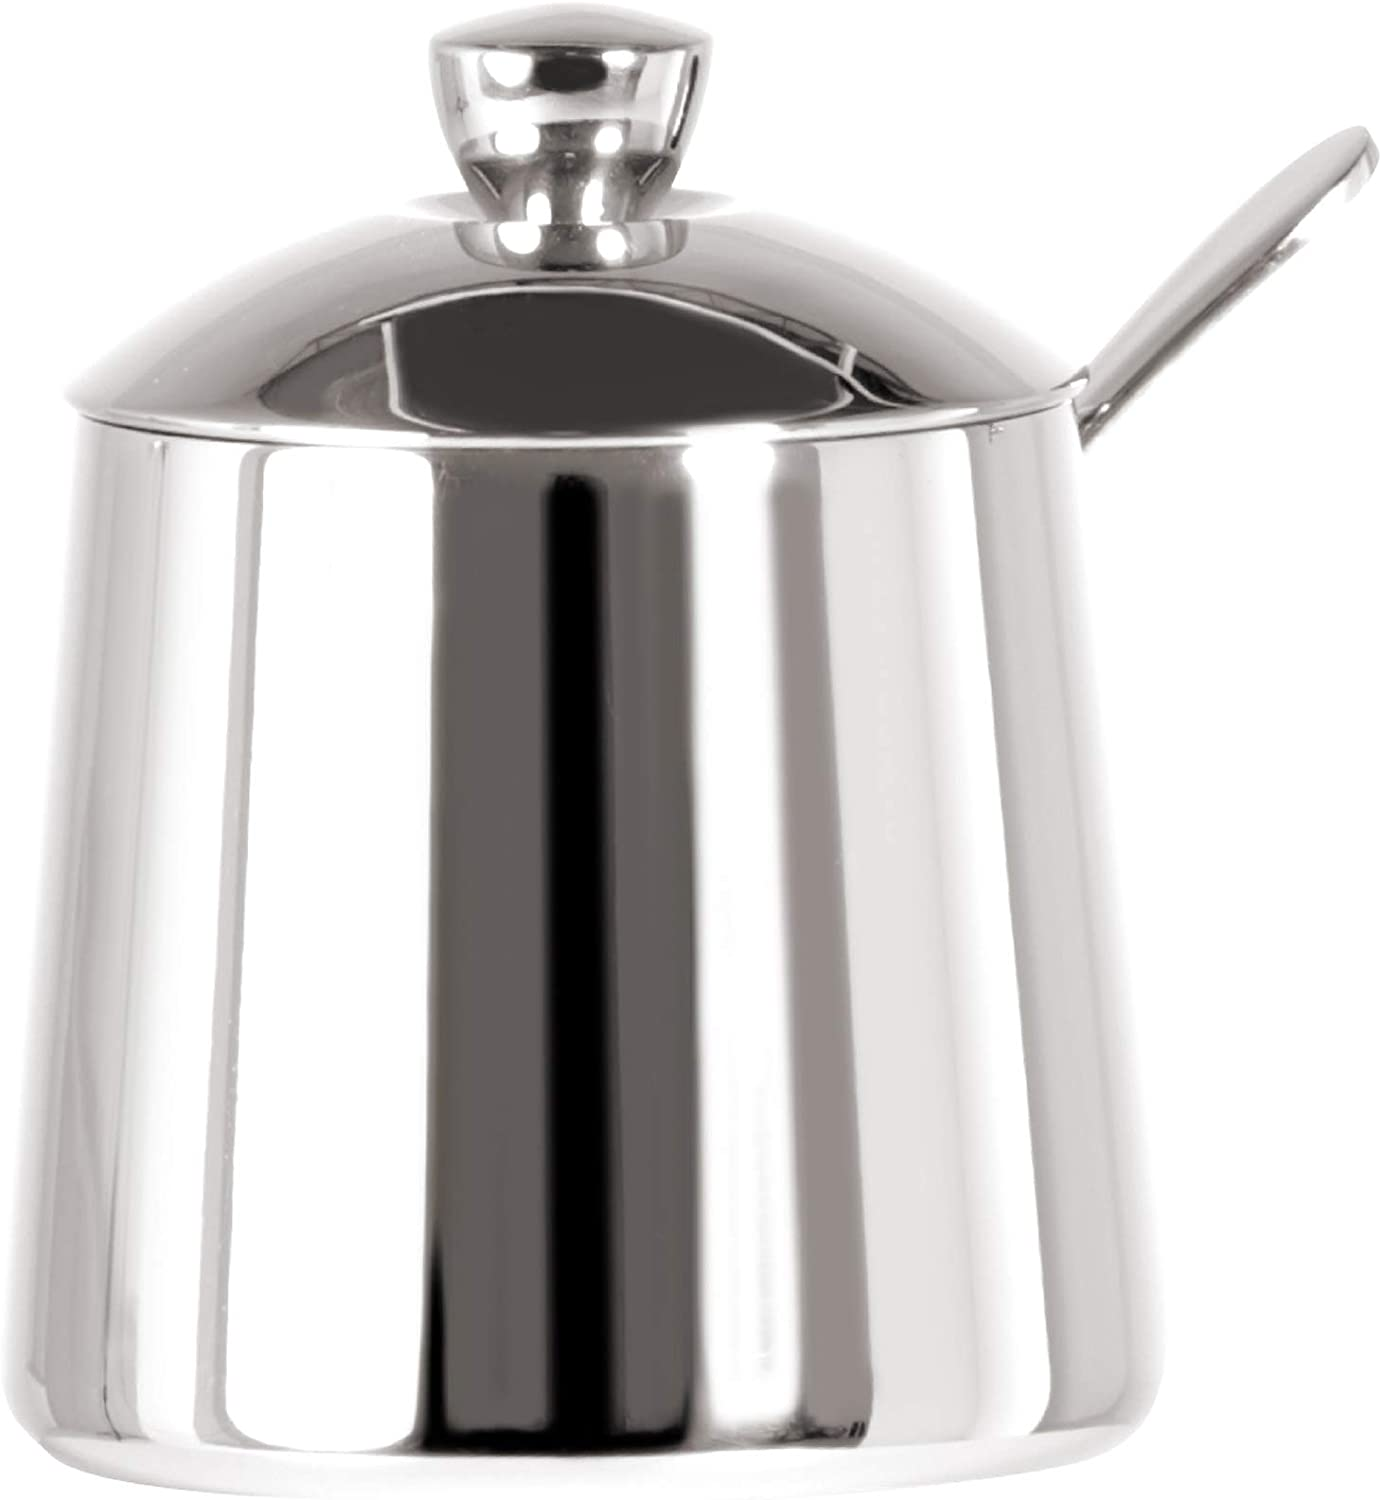 Frieling USA 18/10 Stainless Steel Sugar Bowl and Spoon Set